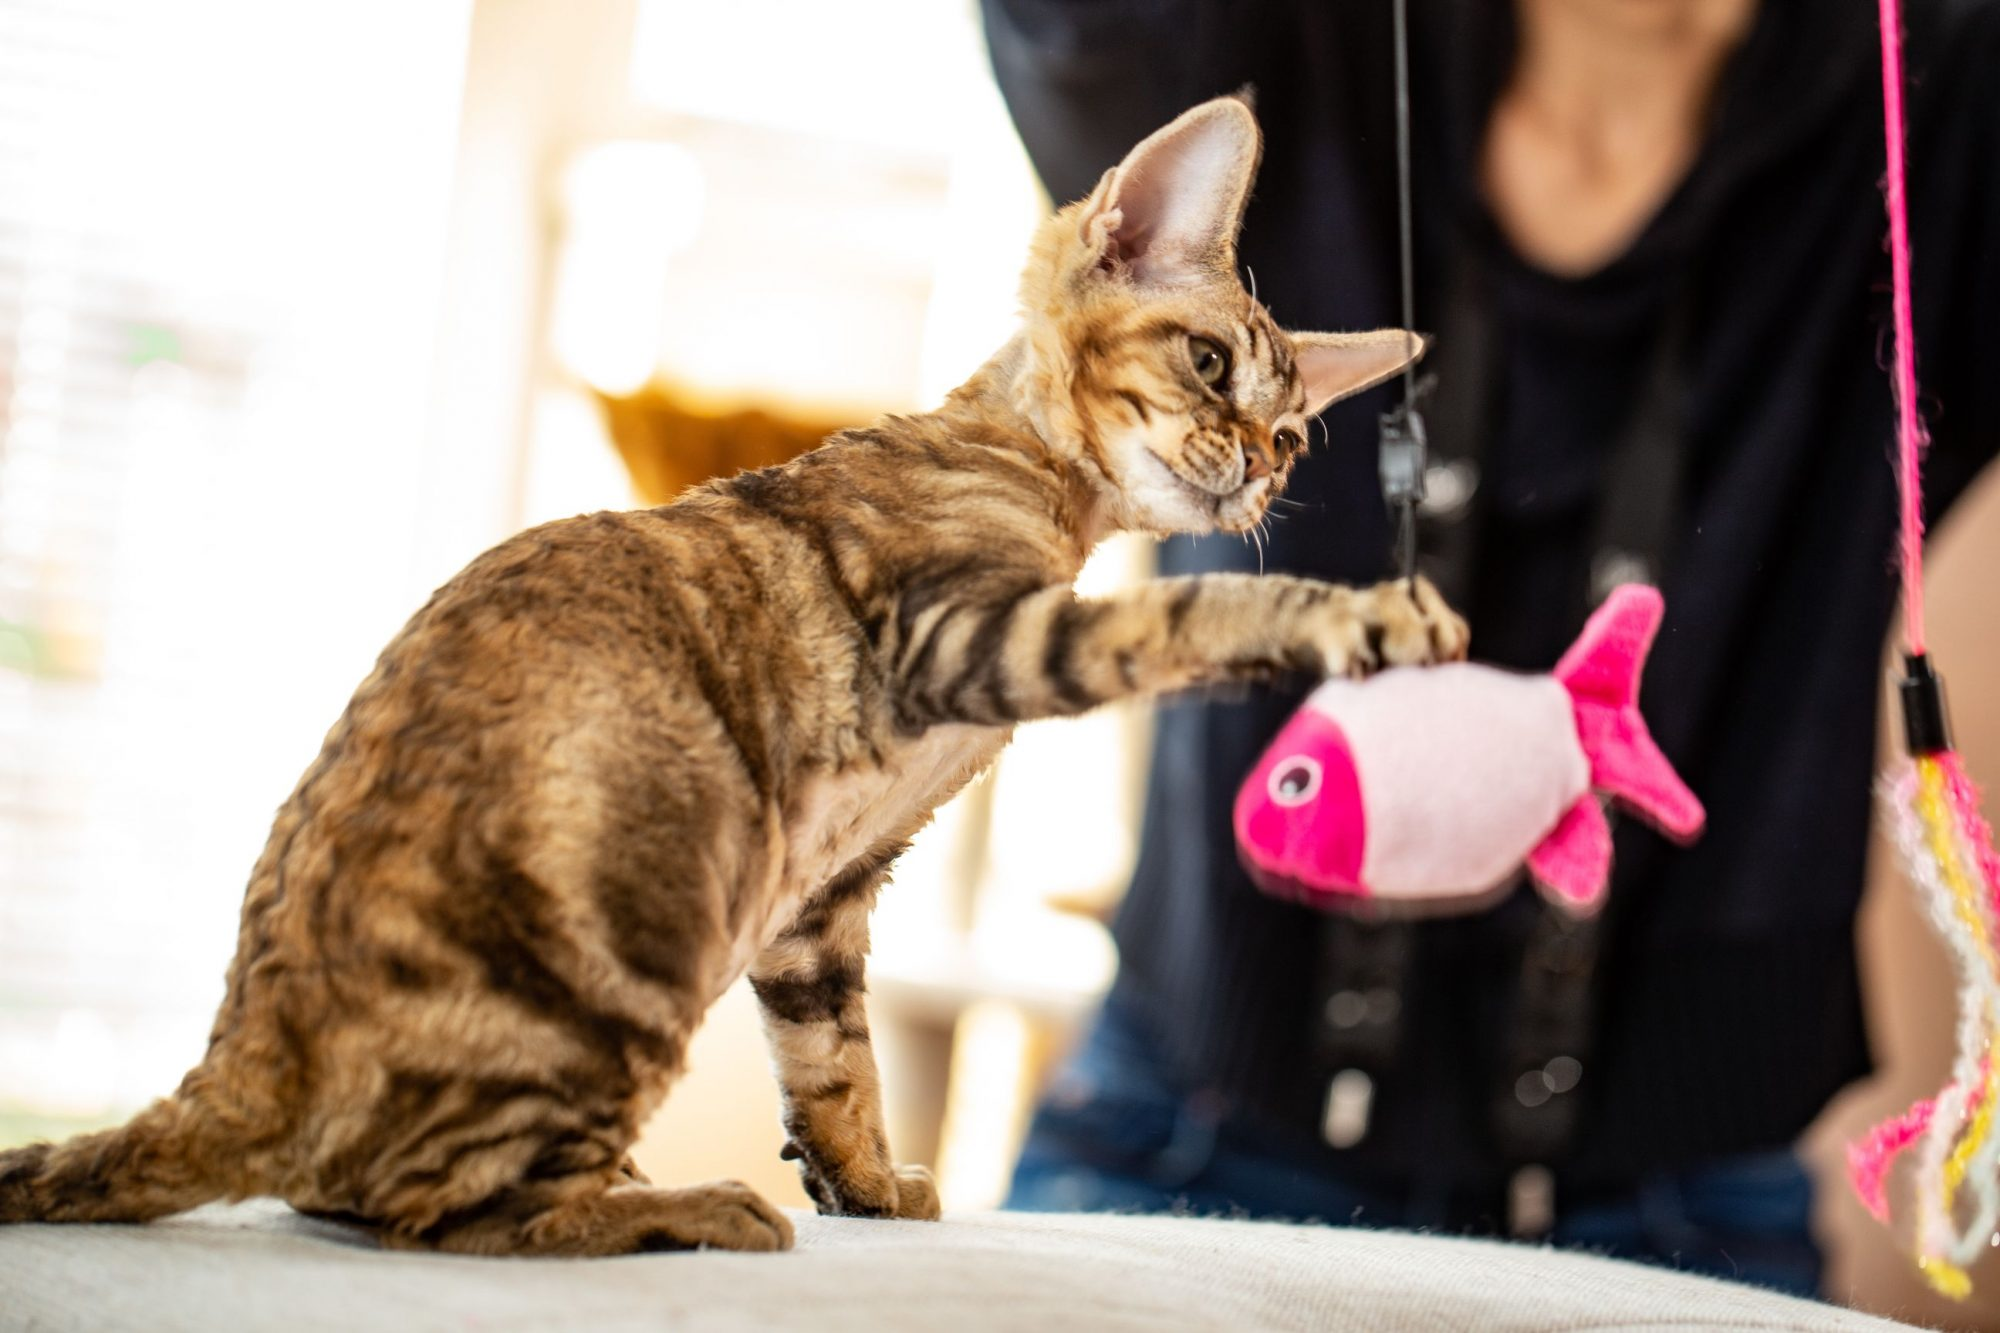 Tabby cat playing with fish toy.